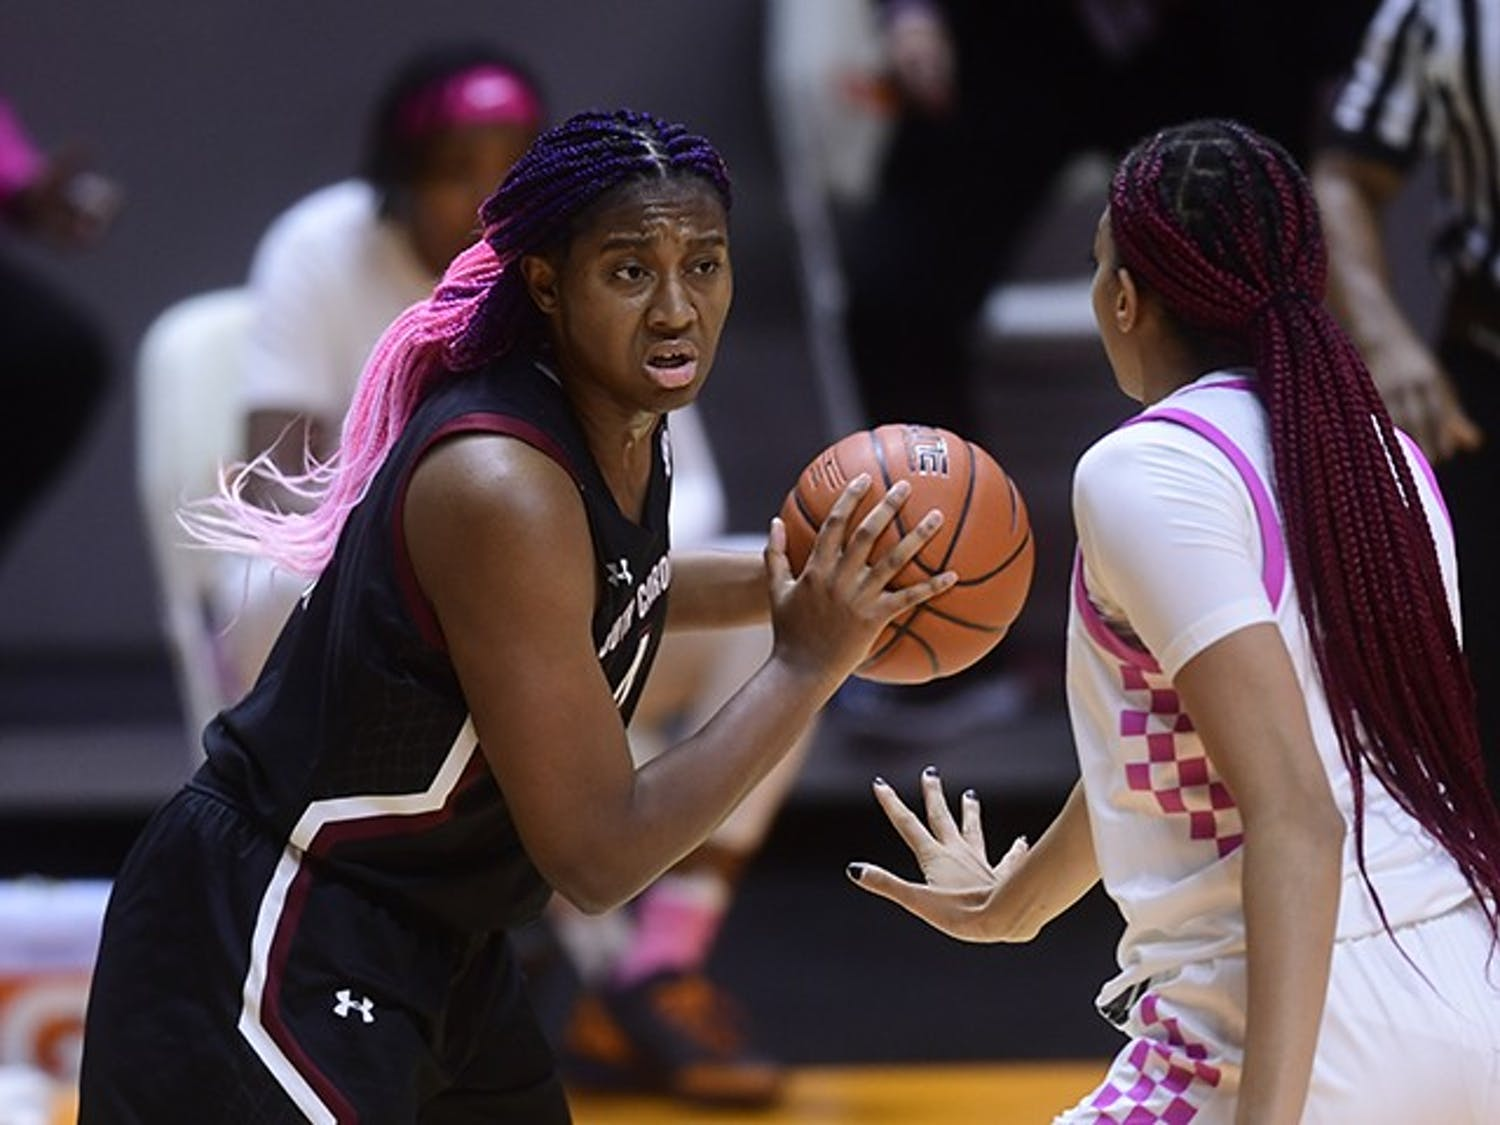 Sophomore forward Aliyah Boston holds the ball while facing a Tennessee player. South Carolina lost to Tennessee 75-67.